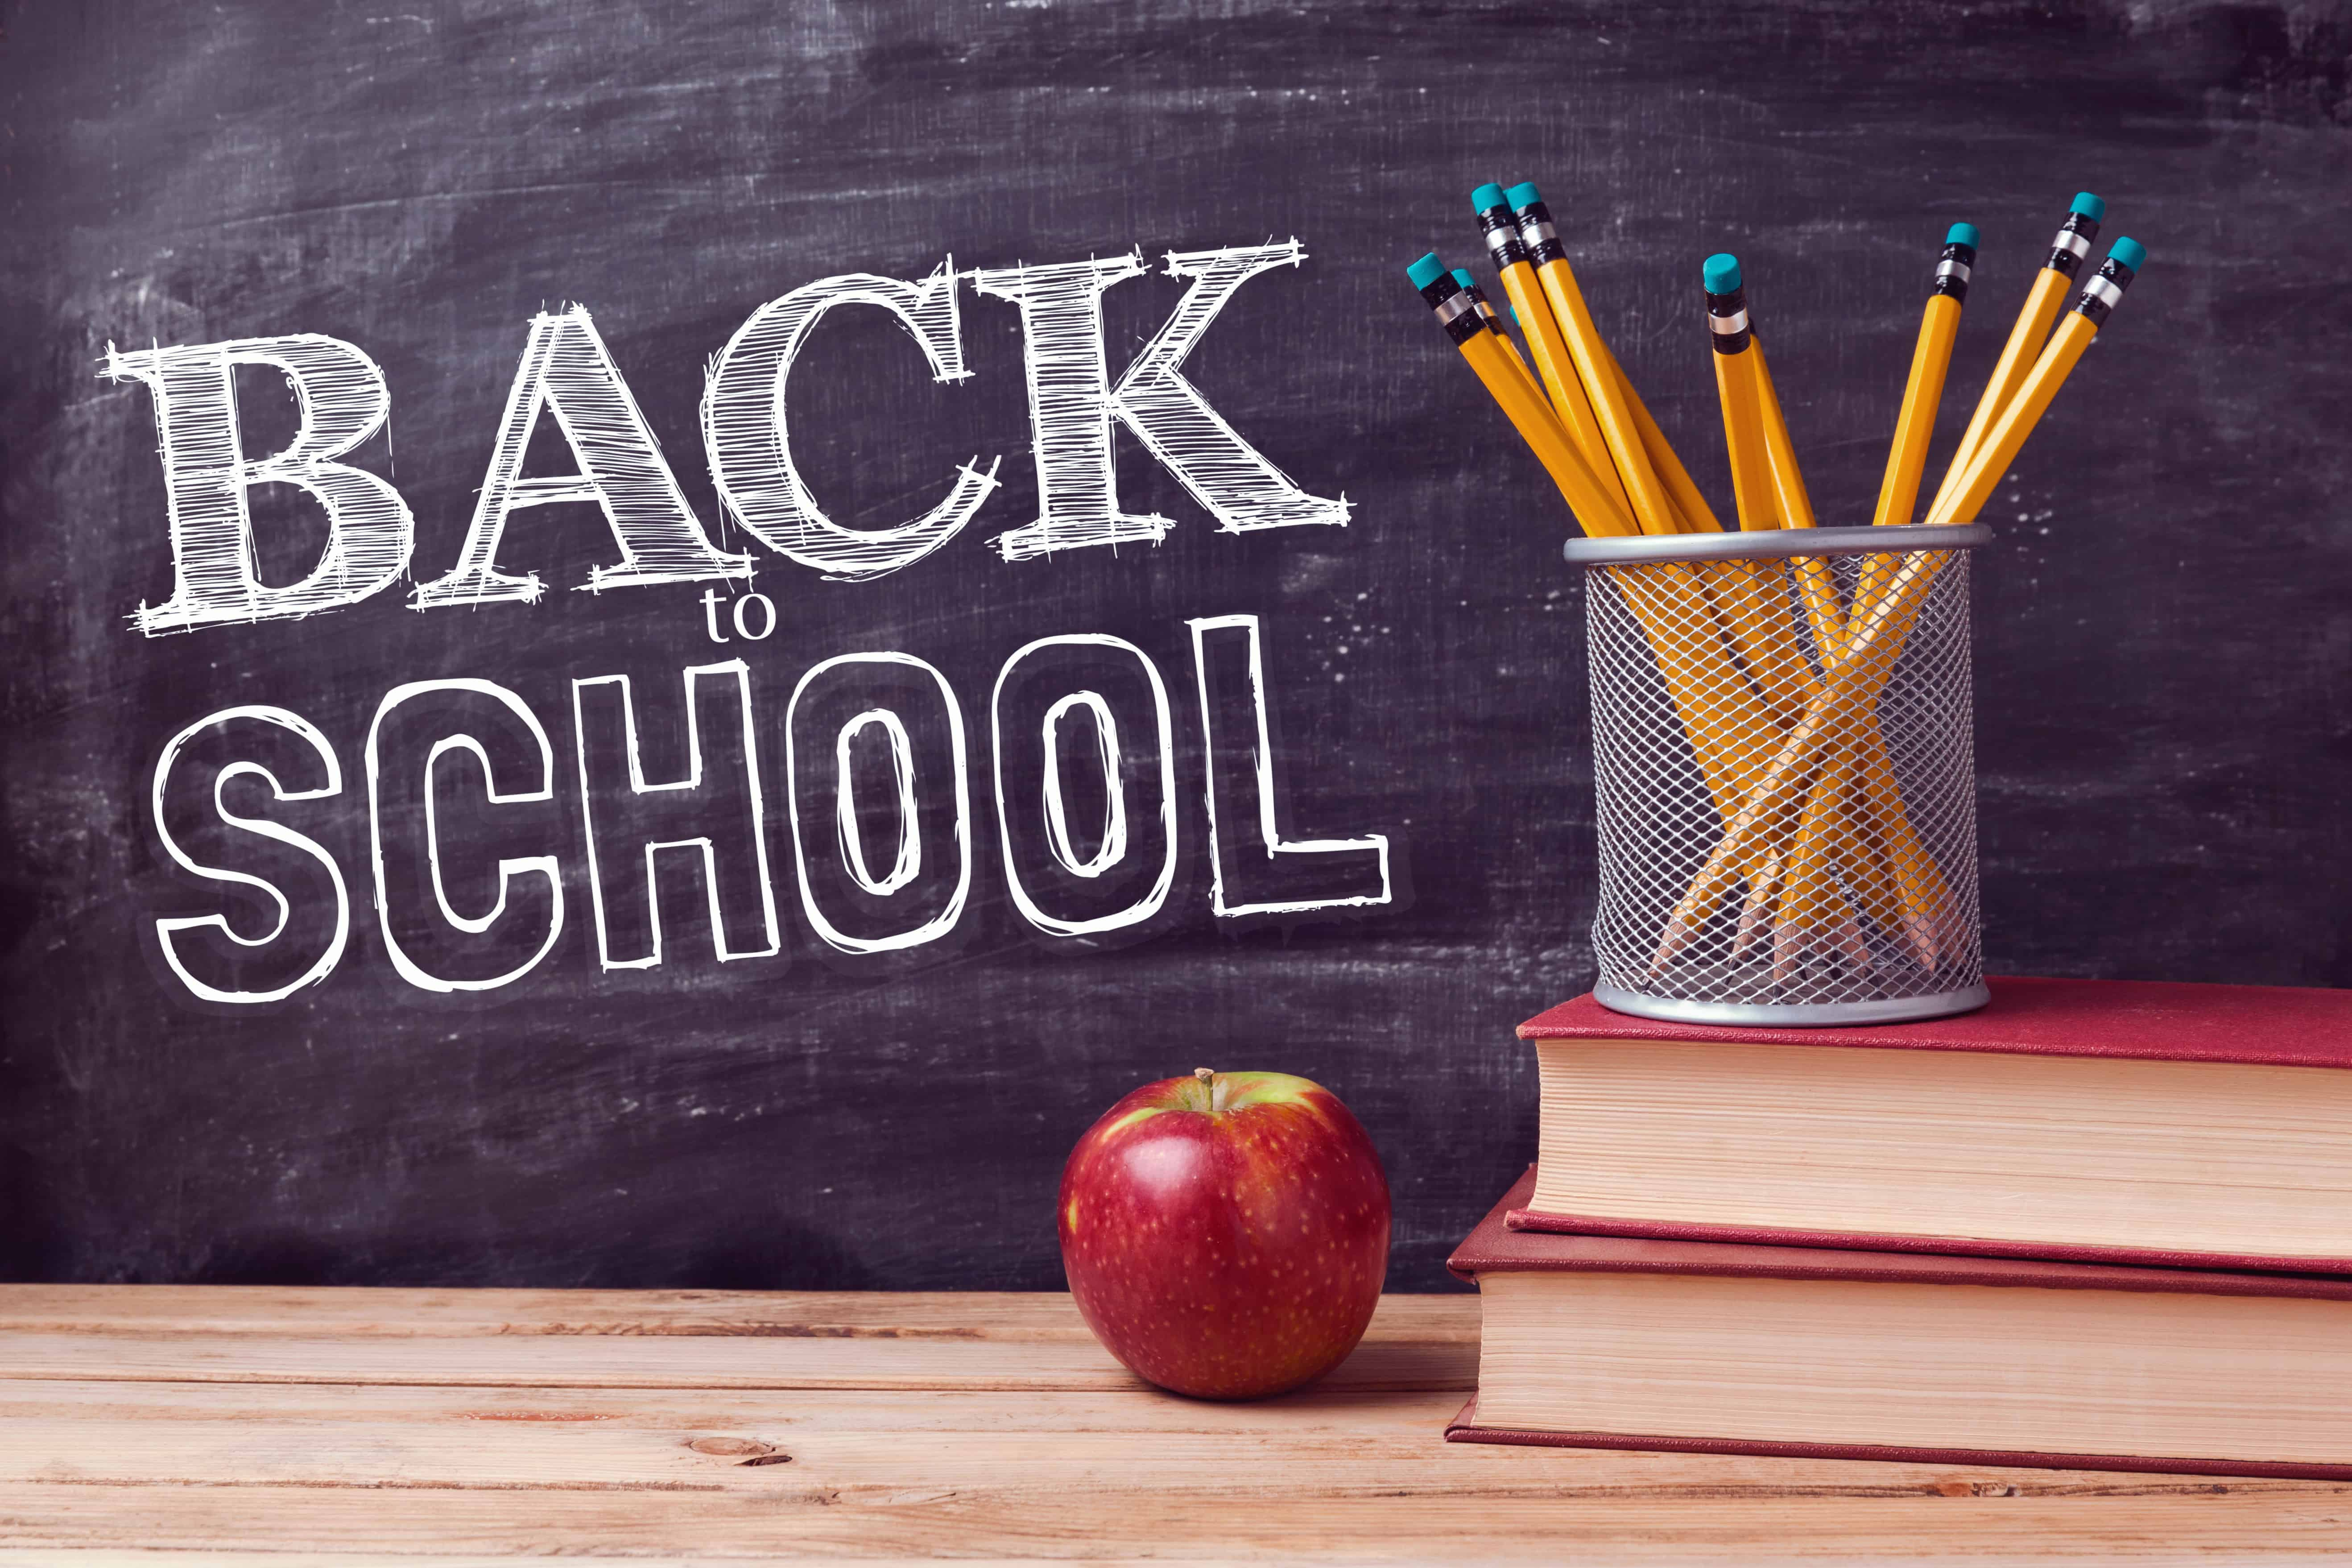 Back To School Lettering With Books Pencils And Apple Over Chalkboard Background